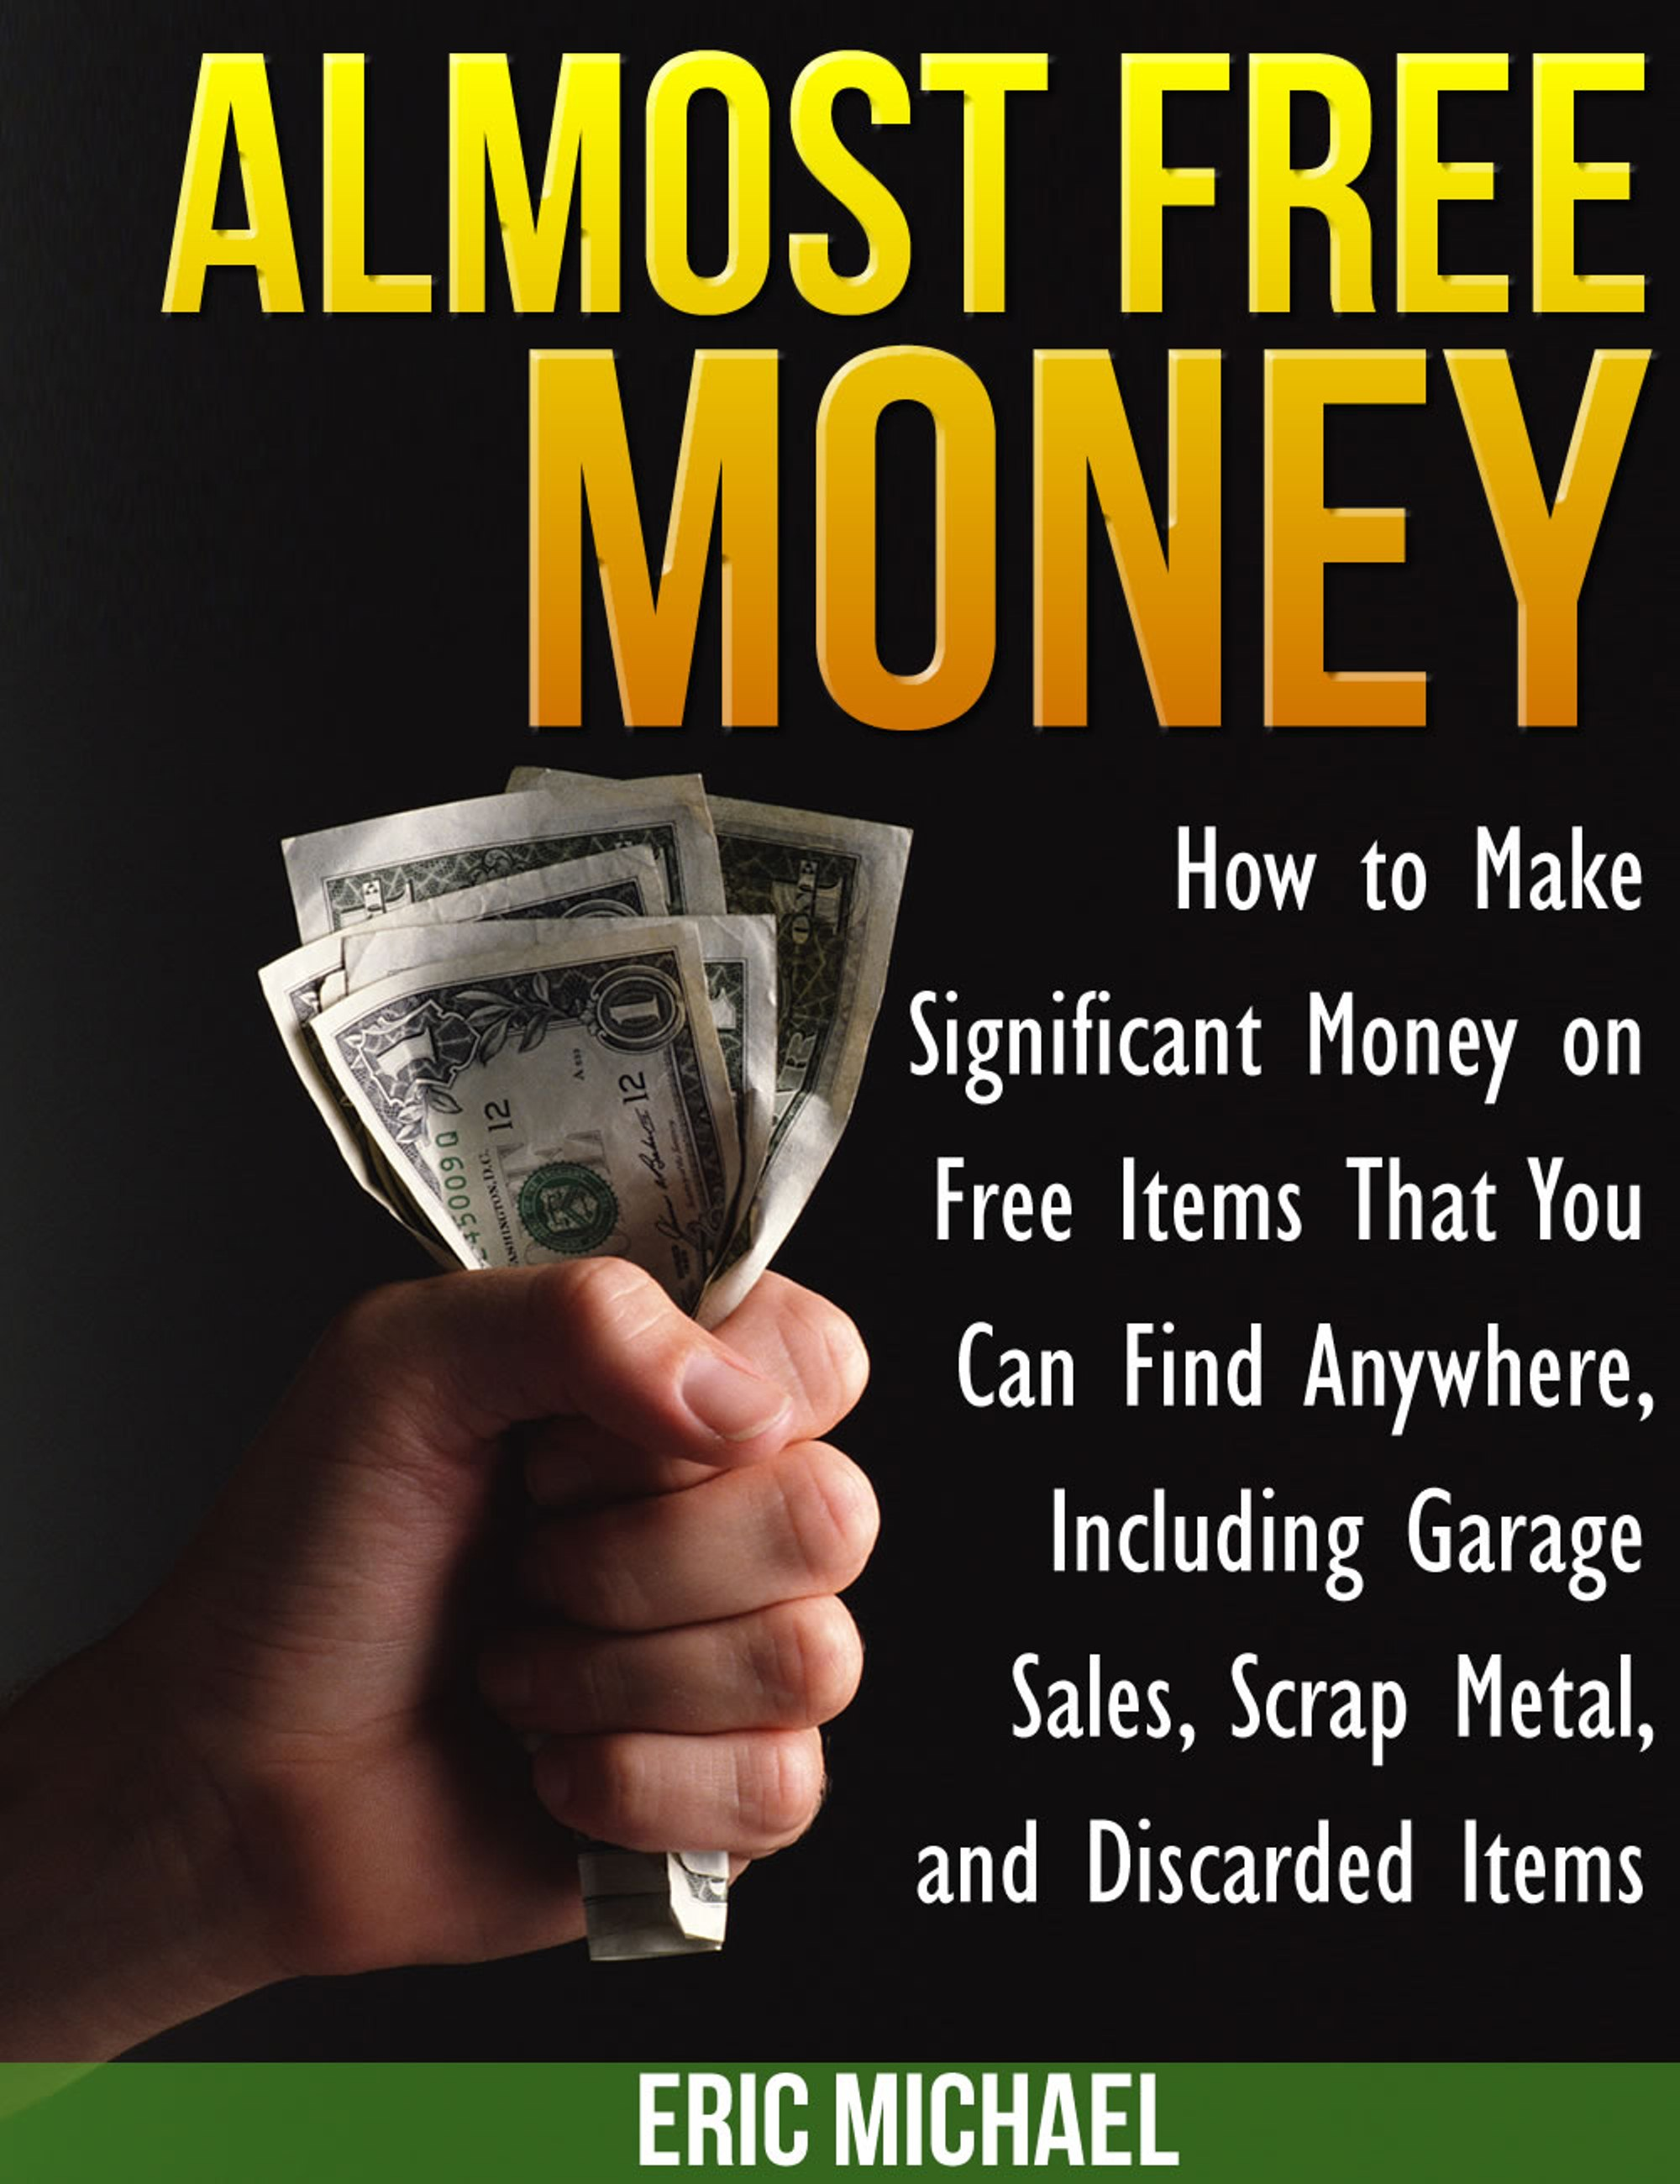 Almost Free Money: How to Make Significant Money on Free Items That You Can Find Anywhere, Including Garage Sales, Scrap Metal, and Discarded Items (sst-cccxxiv)